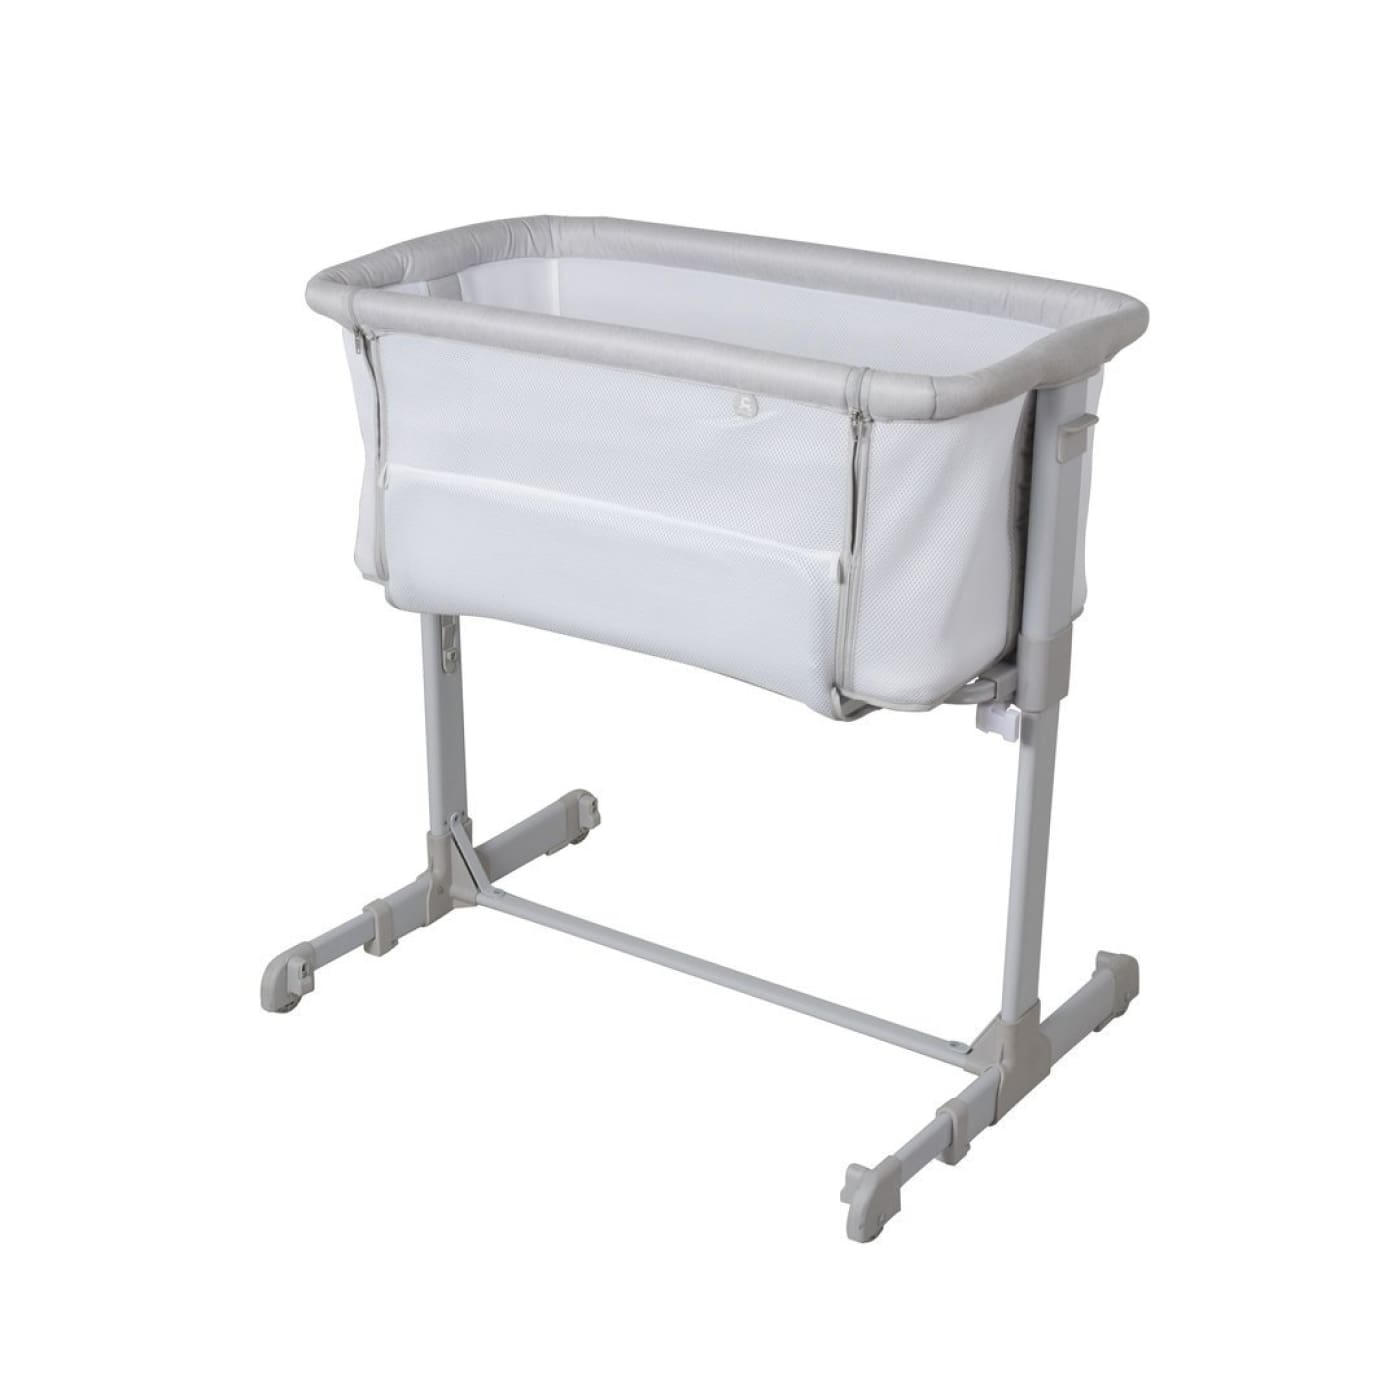 Childcare Doze Breathable Bedside Sleeper - Silver - NURSERY & BEDTIME - BASSINETS/CRADLES/CO-SLEEPERS